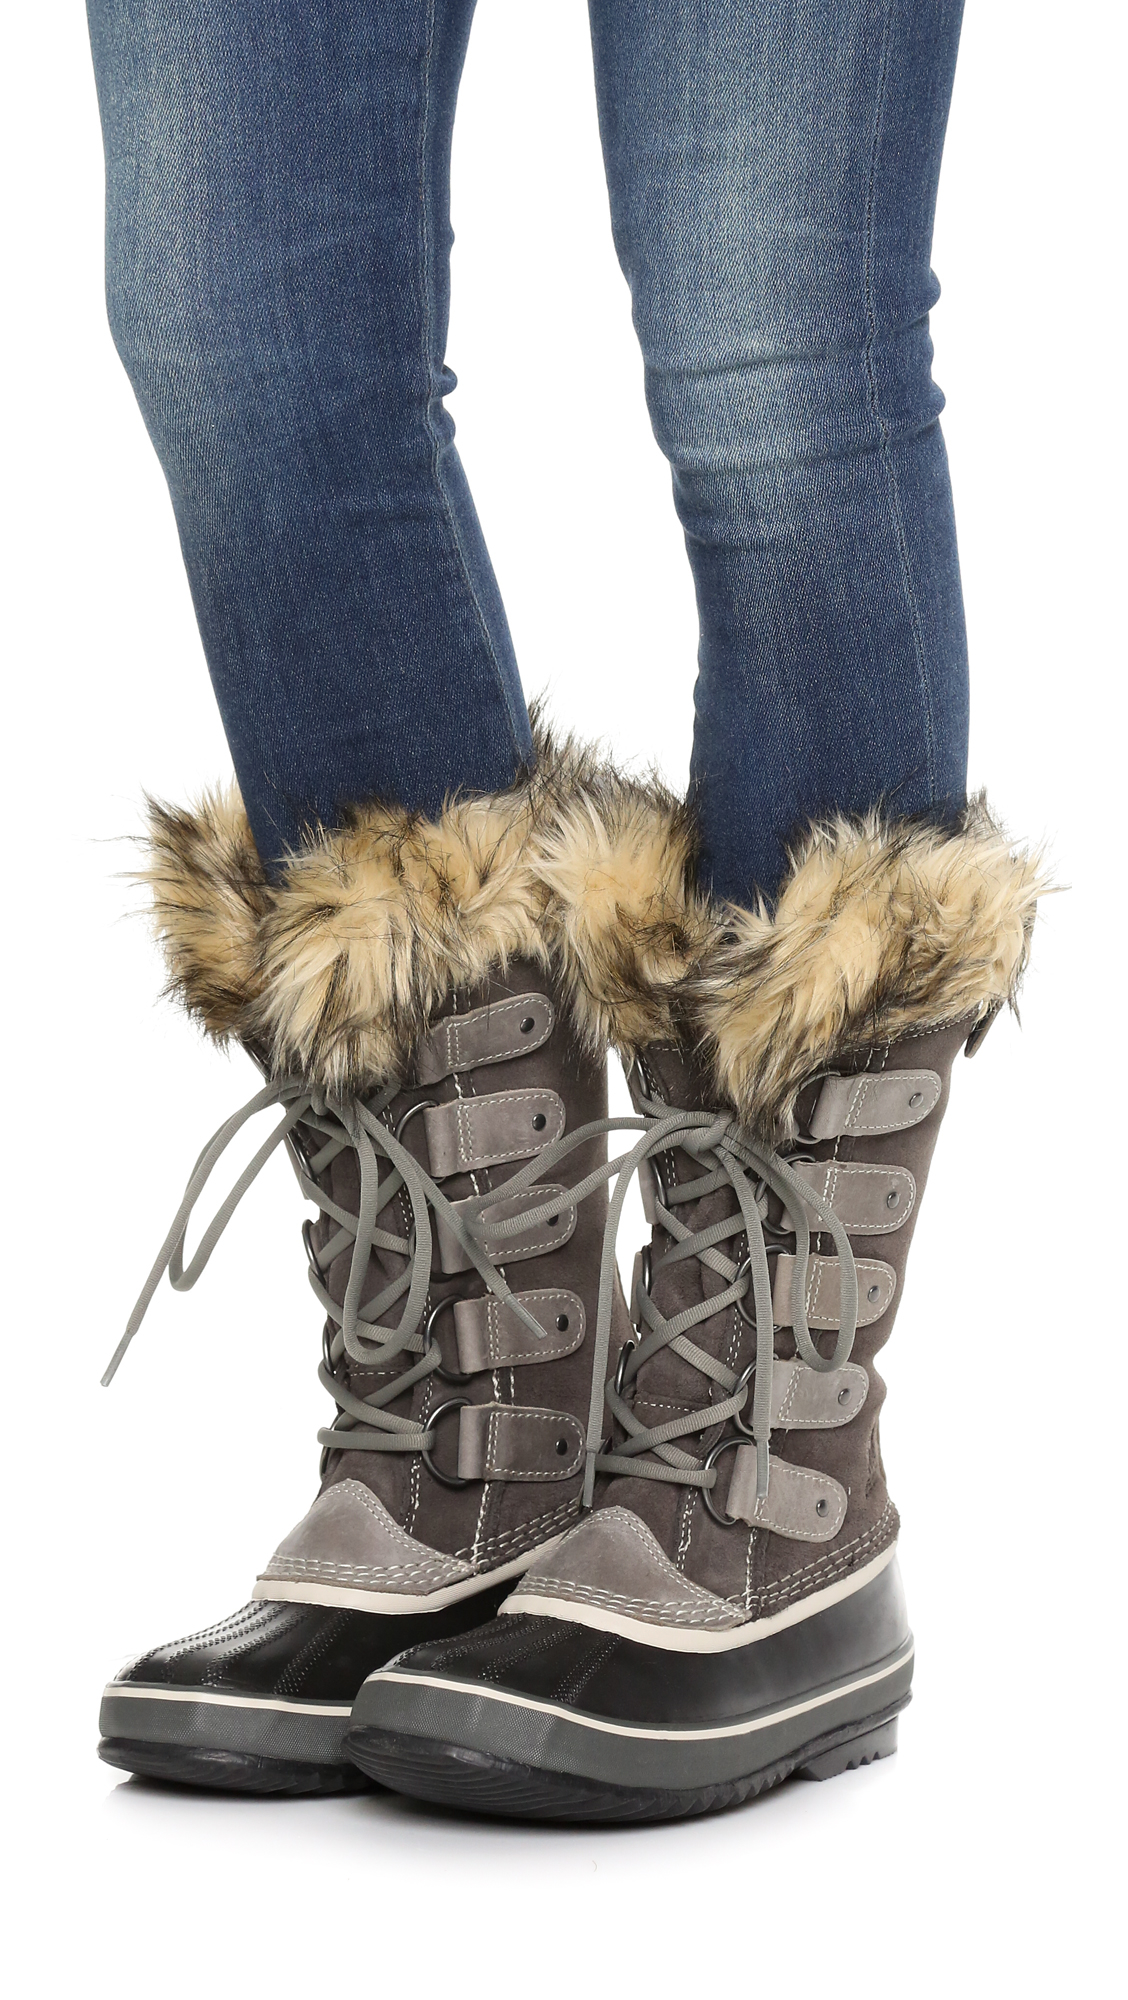 sorel Joan of Arctic shearling-trimmed suede and rubber boots Sale Big Discount Cheap Sale Low Price Outlet 2018 Unisex Free Shipping Get To Buy intWj